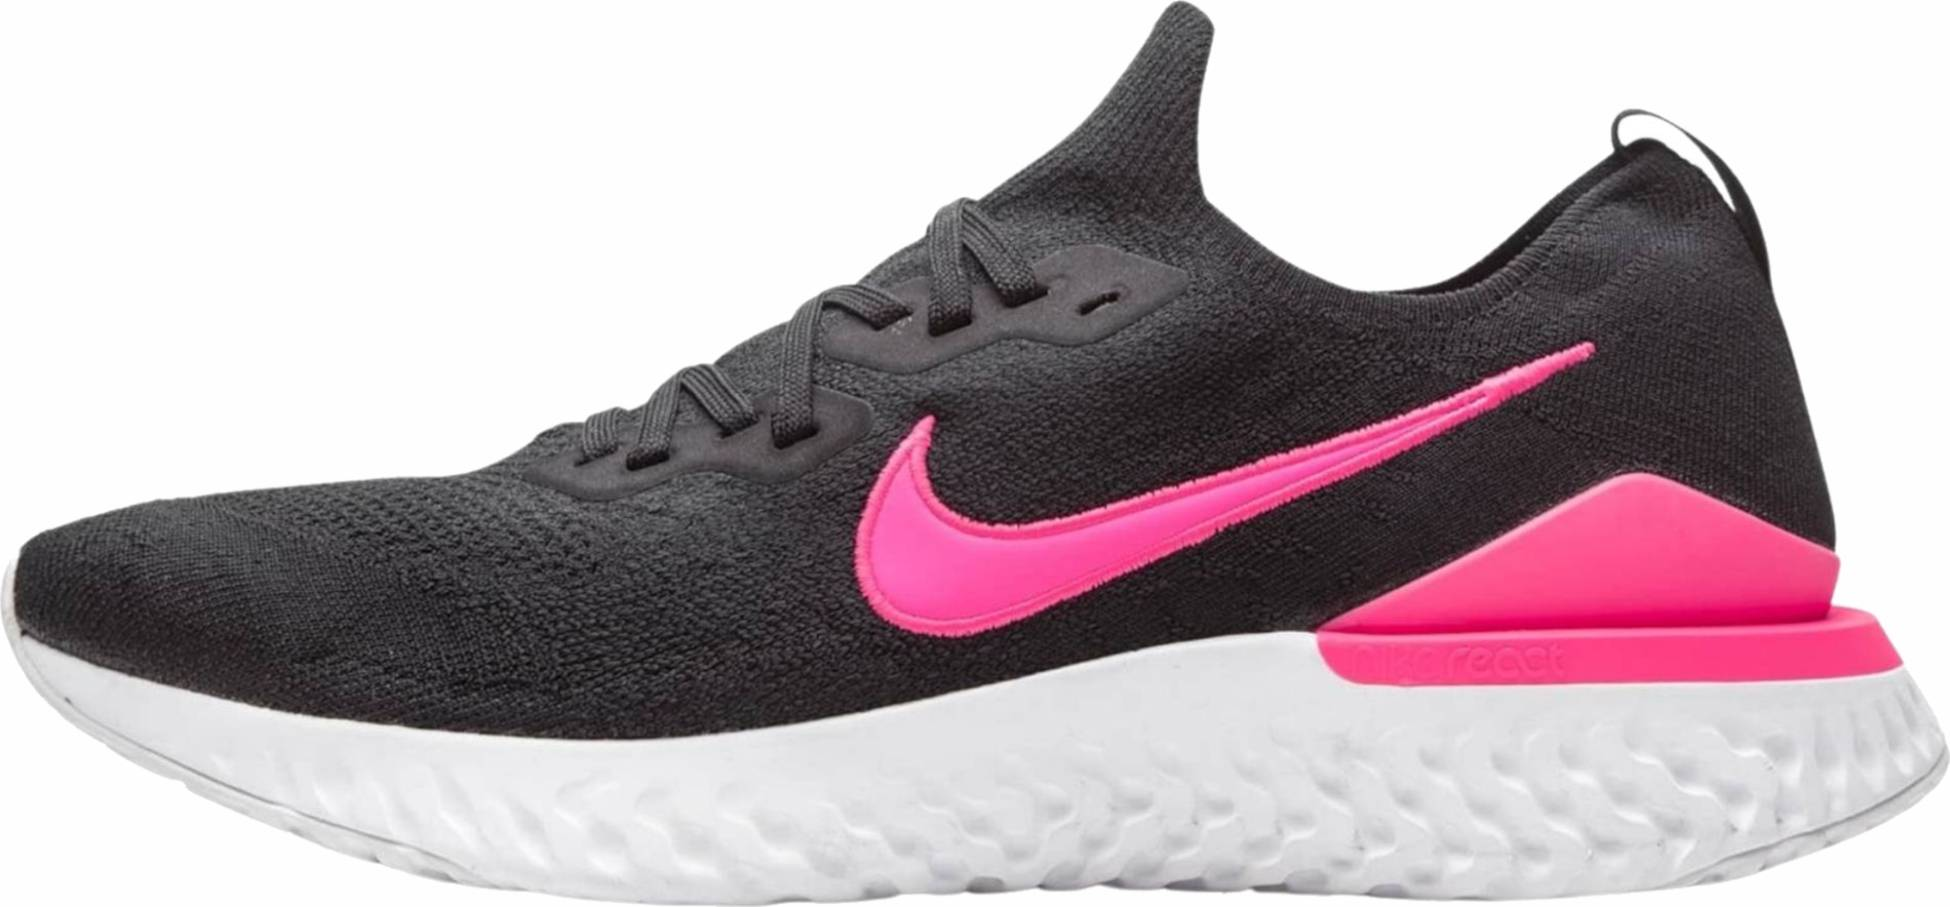 best nike shoes for treadmill